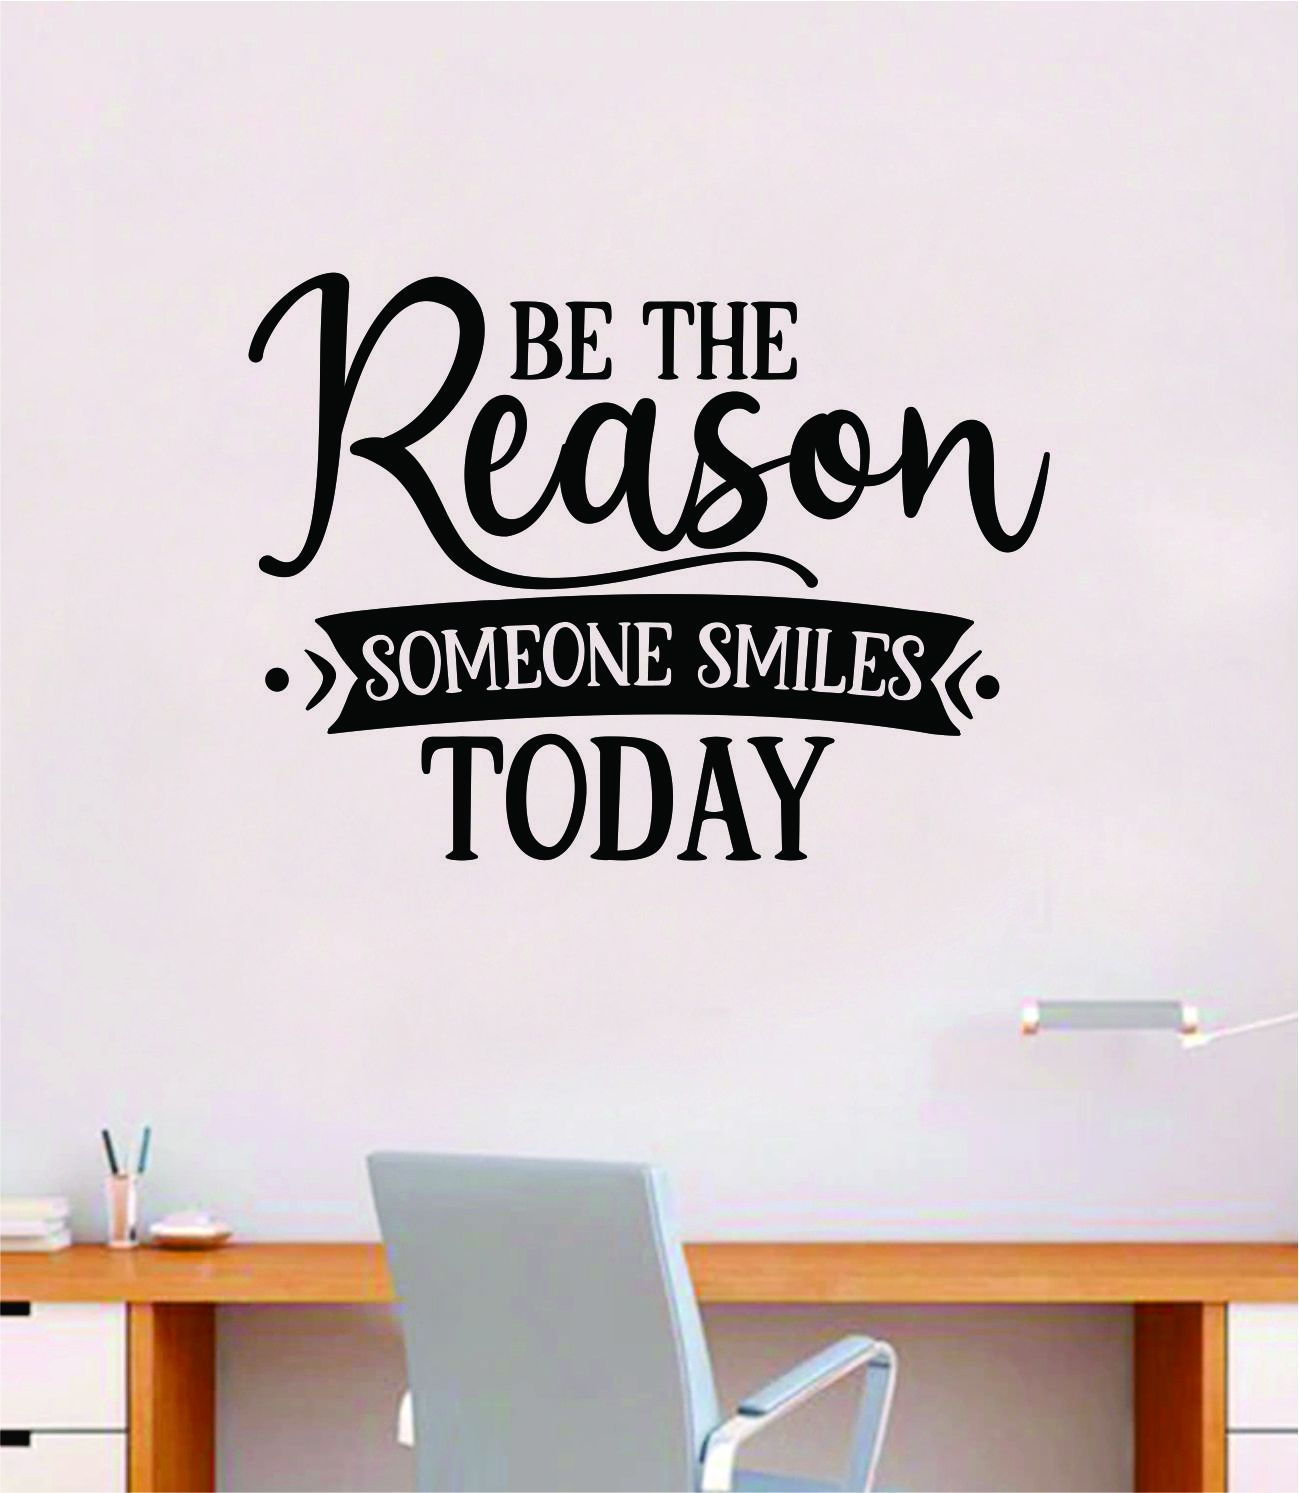 Be the Reason Smiles V3 Wall Decal Quote Home Room Decor Art Vinyl Sticker Inspirational Motivational Good Vibes Teen Baby School - olympic blue